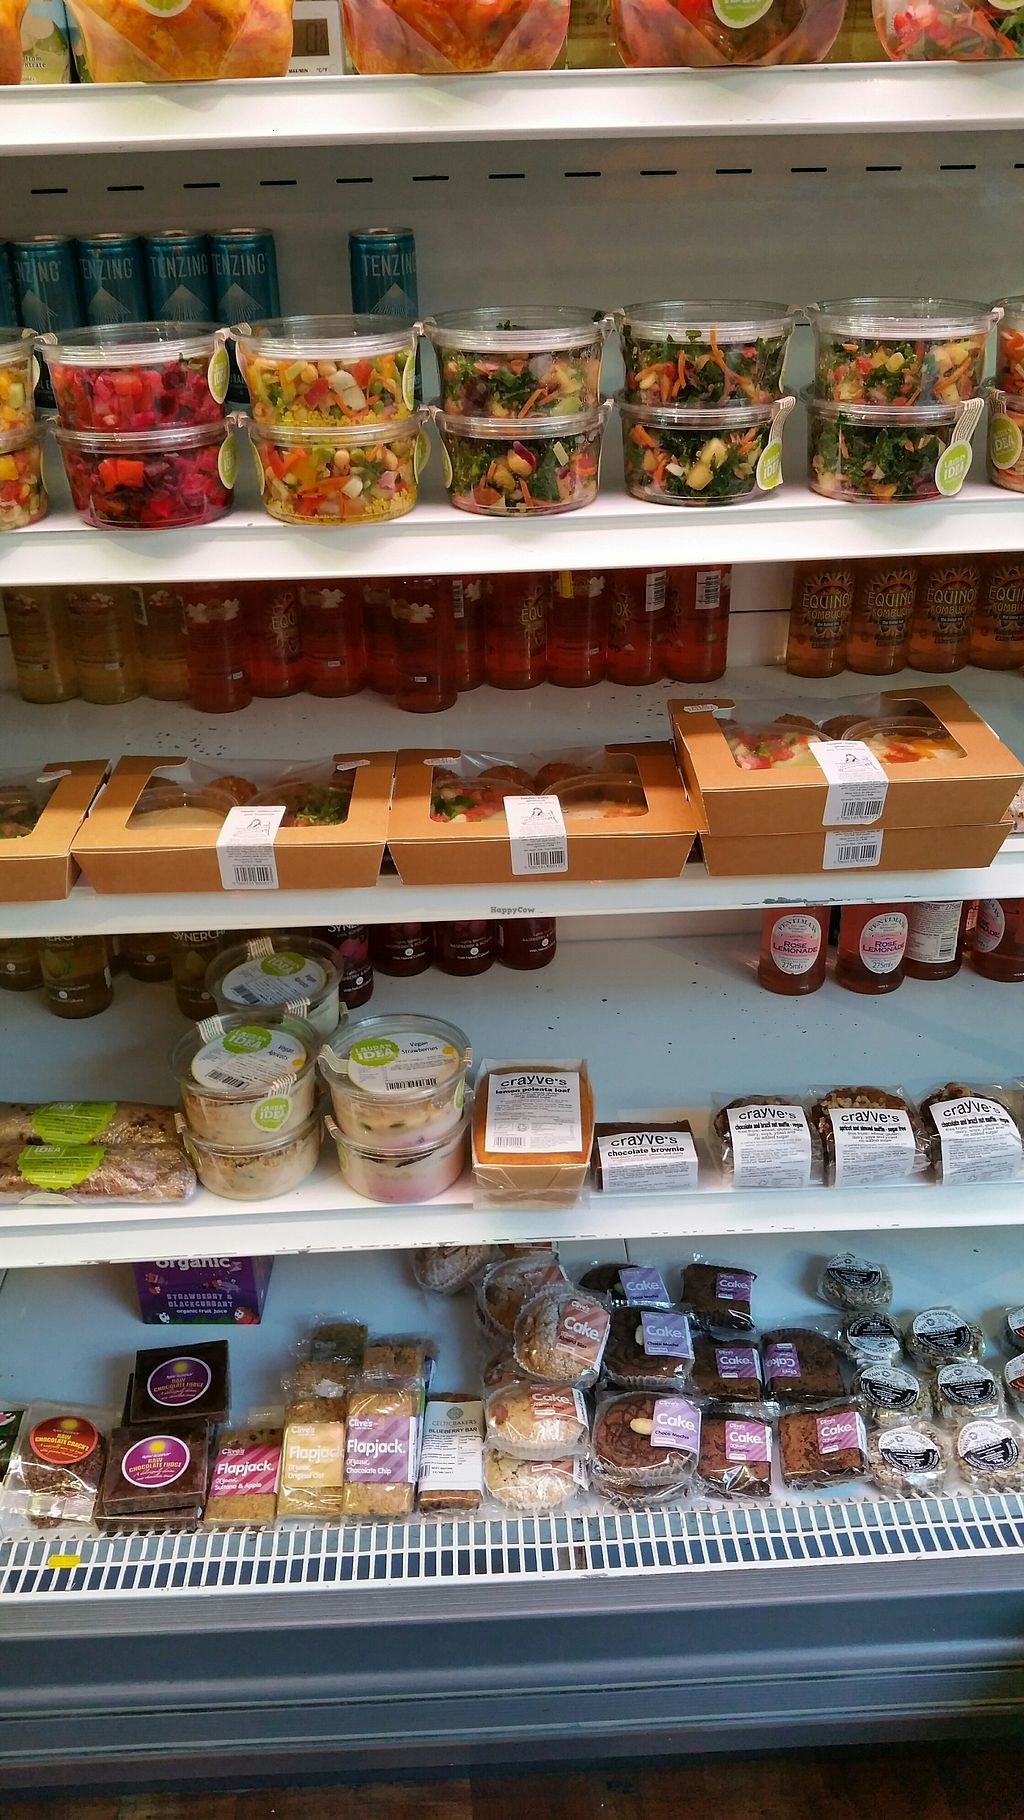 """Photo of Olivers Wholefood Store  by <a href=""""/members/profile/jollypig"""">jollypig</a> <br/>Snacks for Kew Gardens <br/> August 19, 2017  - <a href='/contact/abuse/image/9265/294303'>Report</a>"""